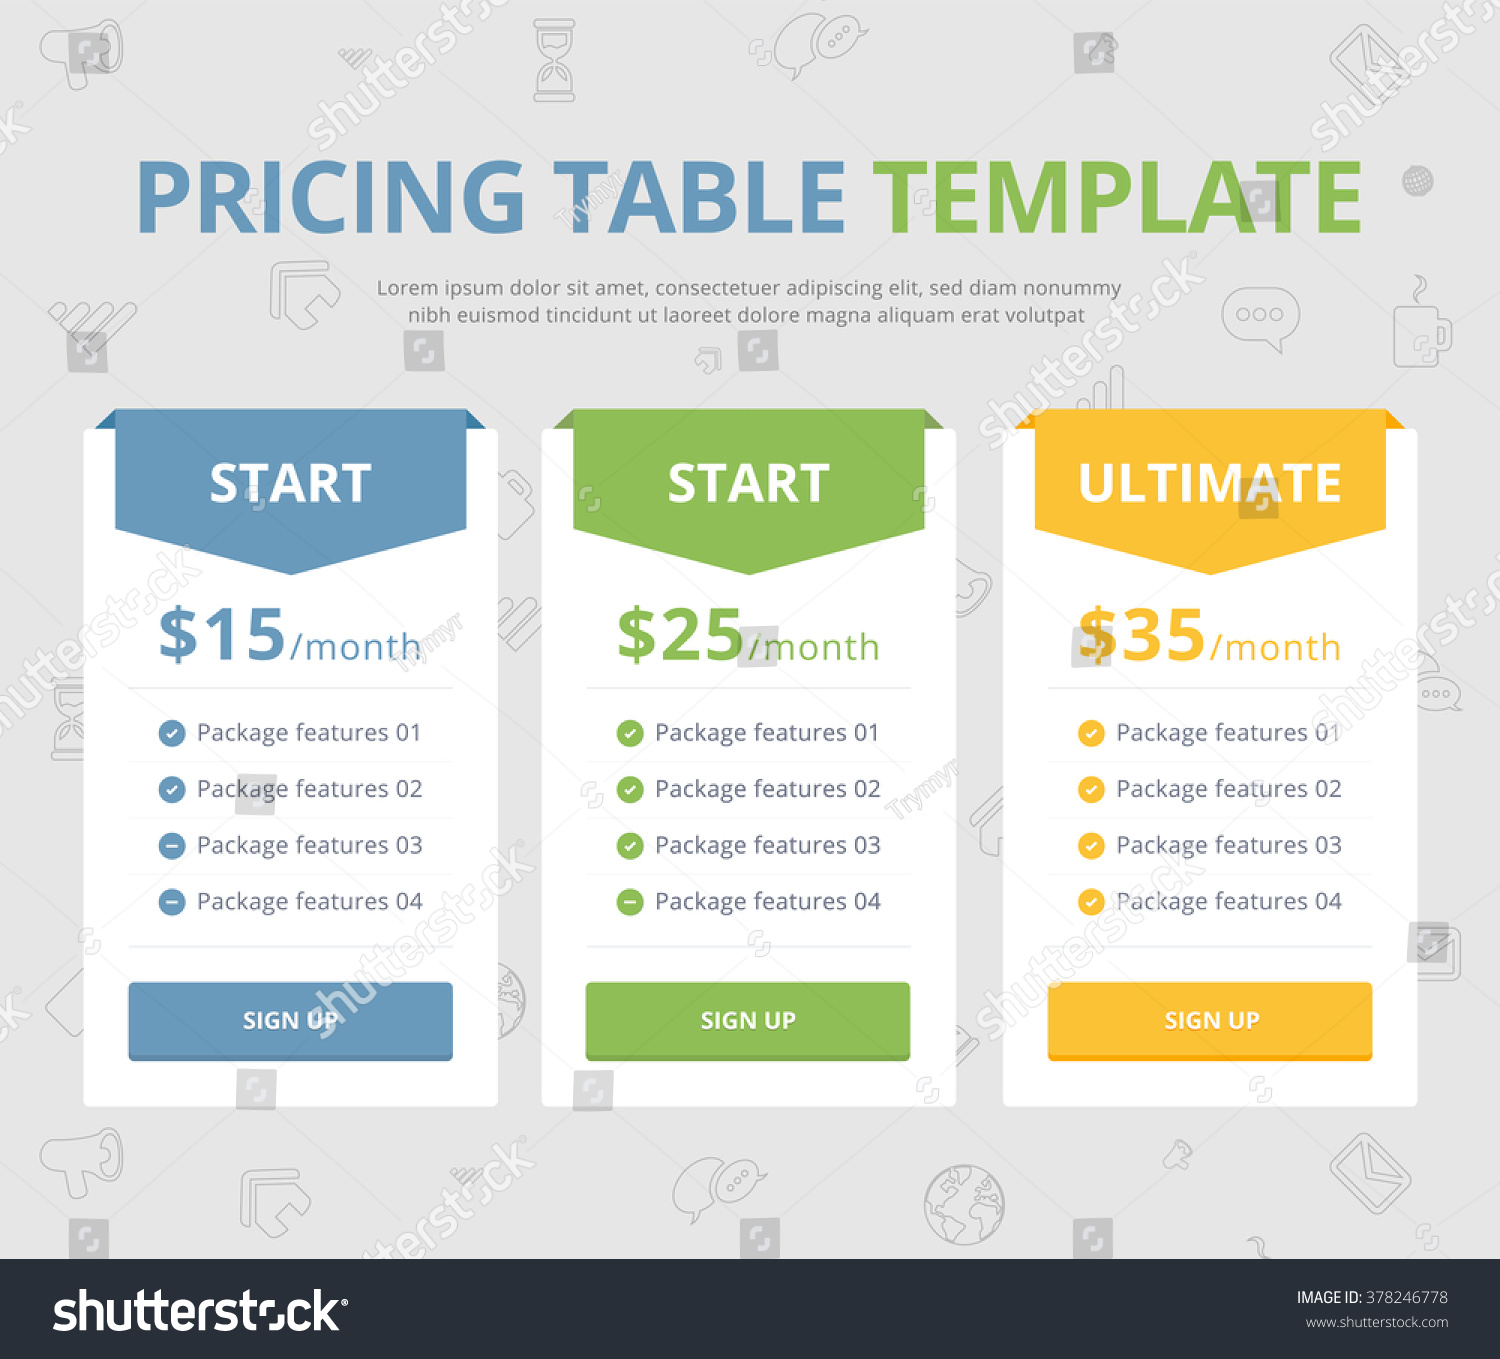 pricing table template three plan type stock vector (royalty free